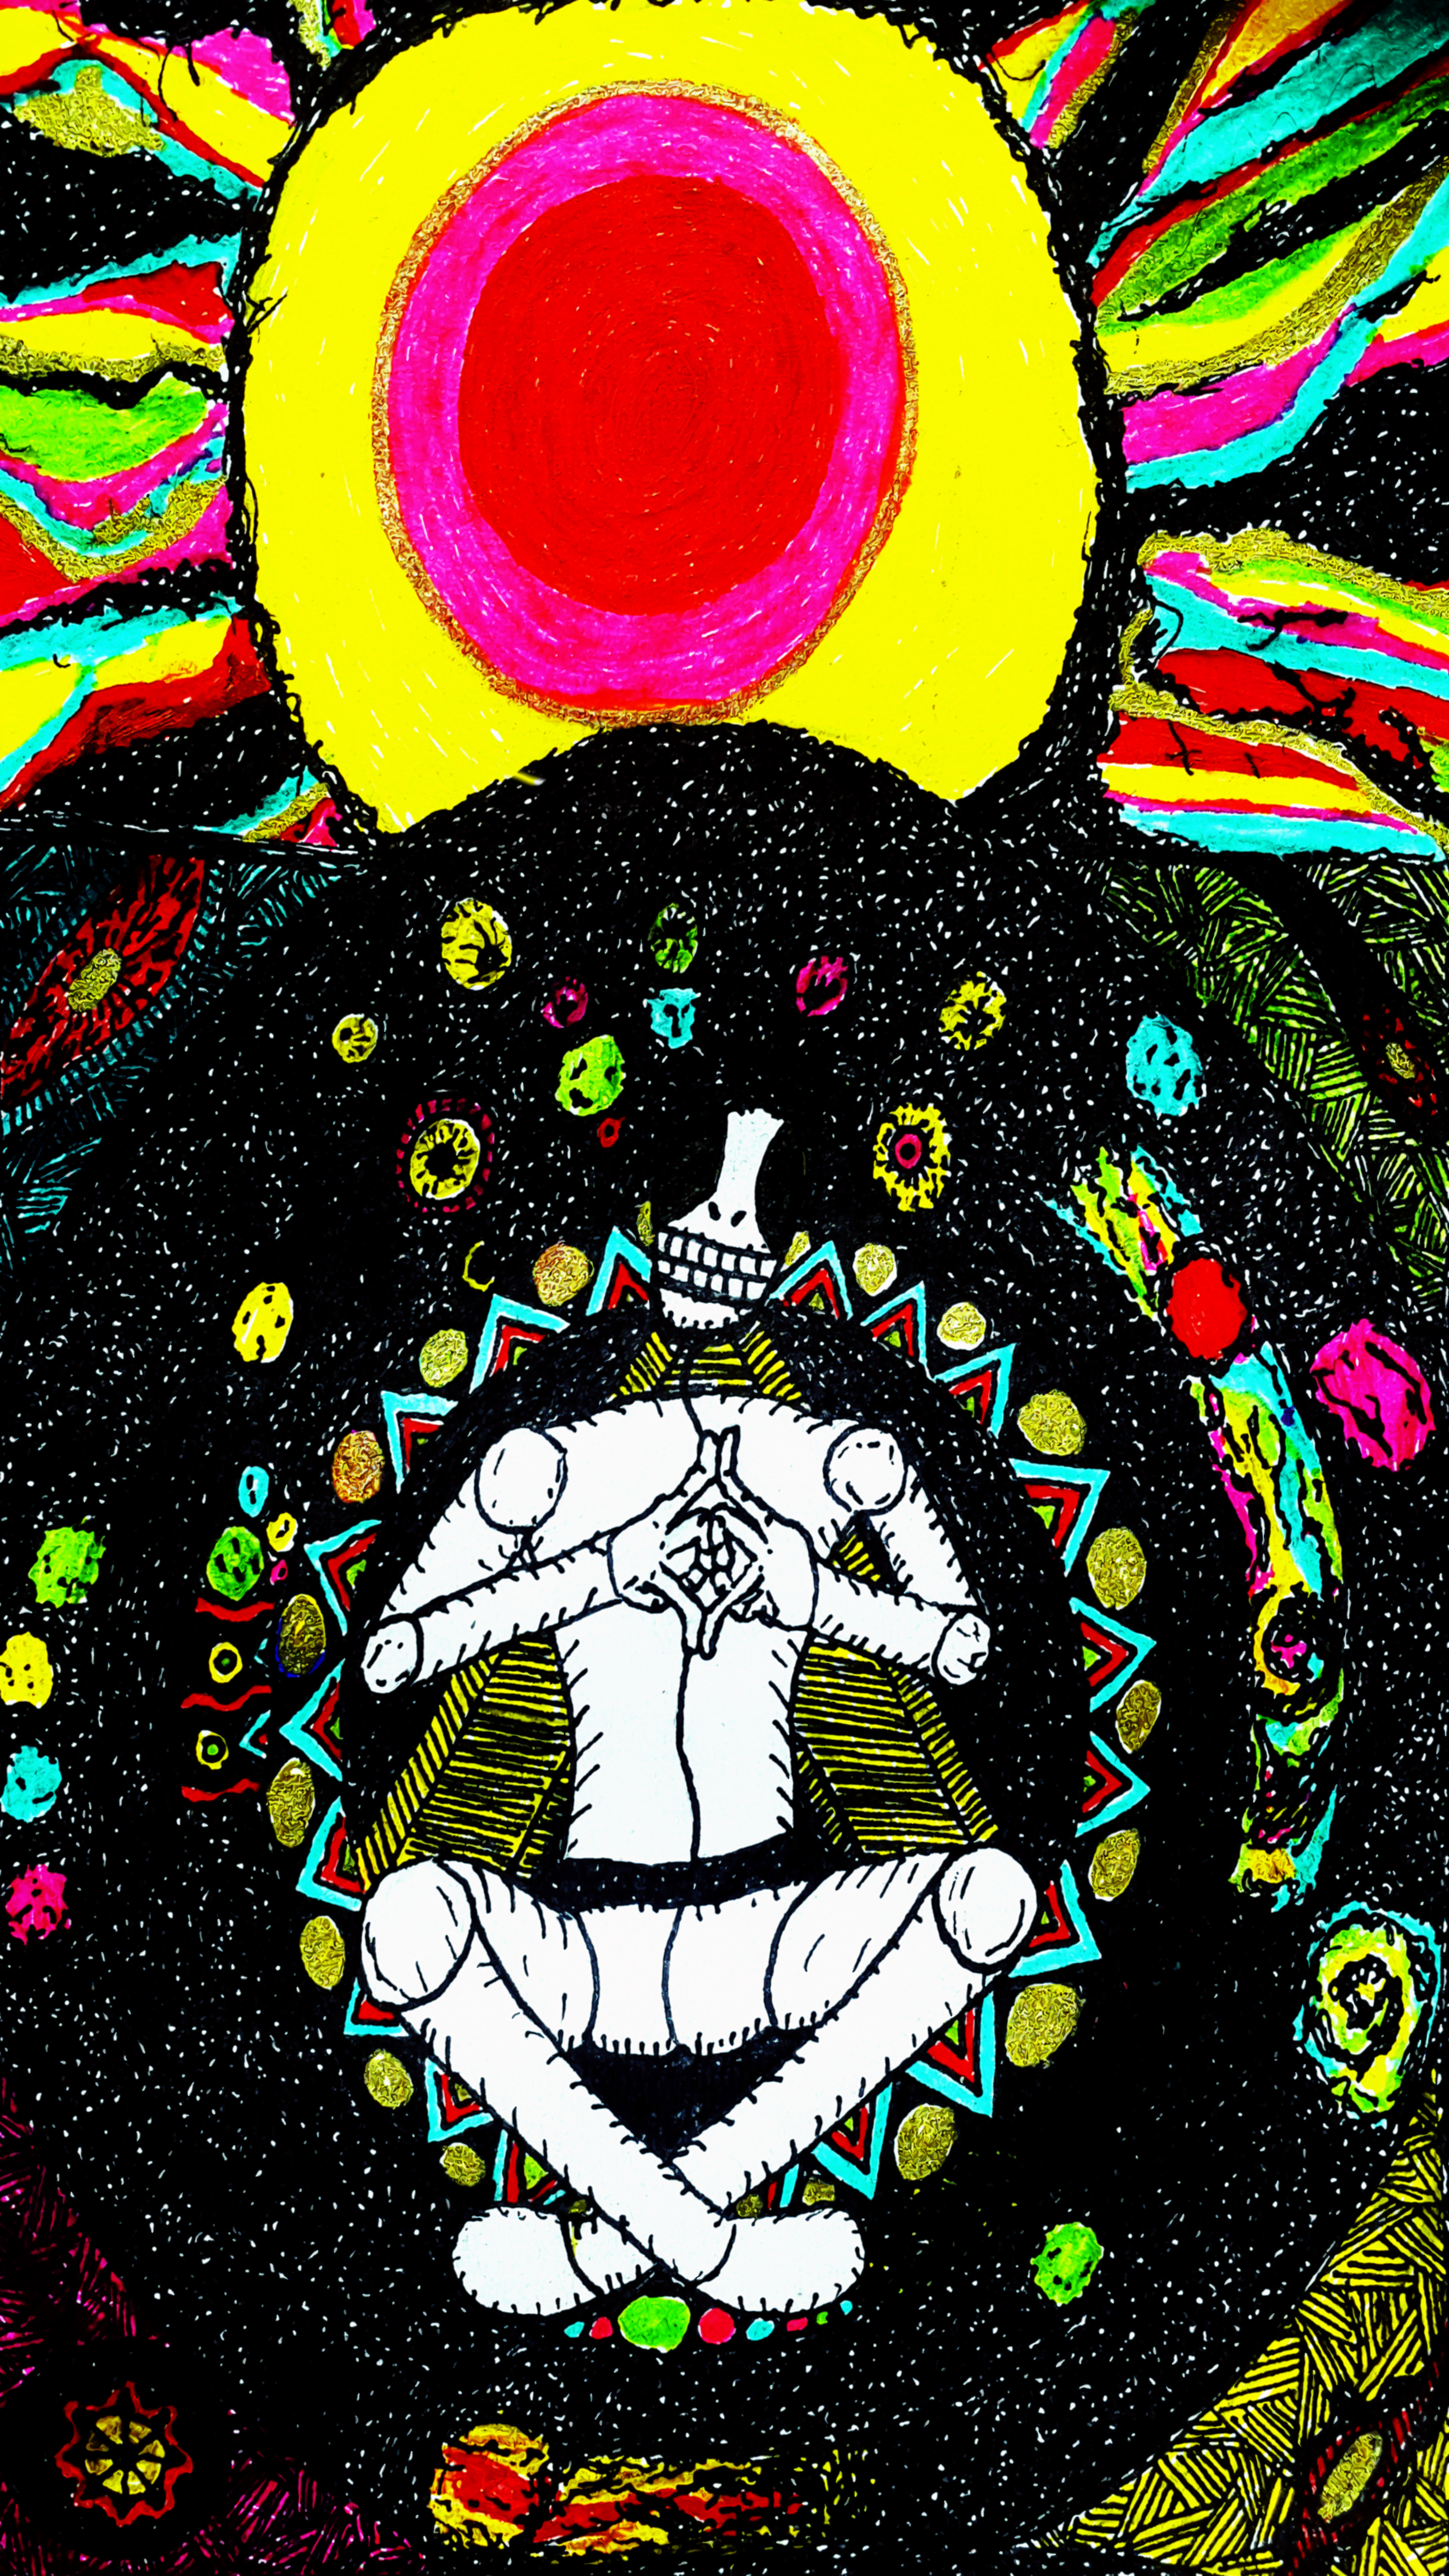 General 2988x5312 space stars universe Color Burst colorful Colors (Album) spiritual mistery eyes galaxy people meditation psychedelic trippy drawing sketches pen